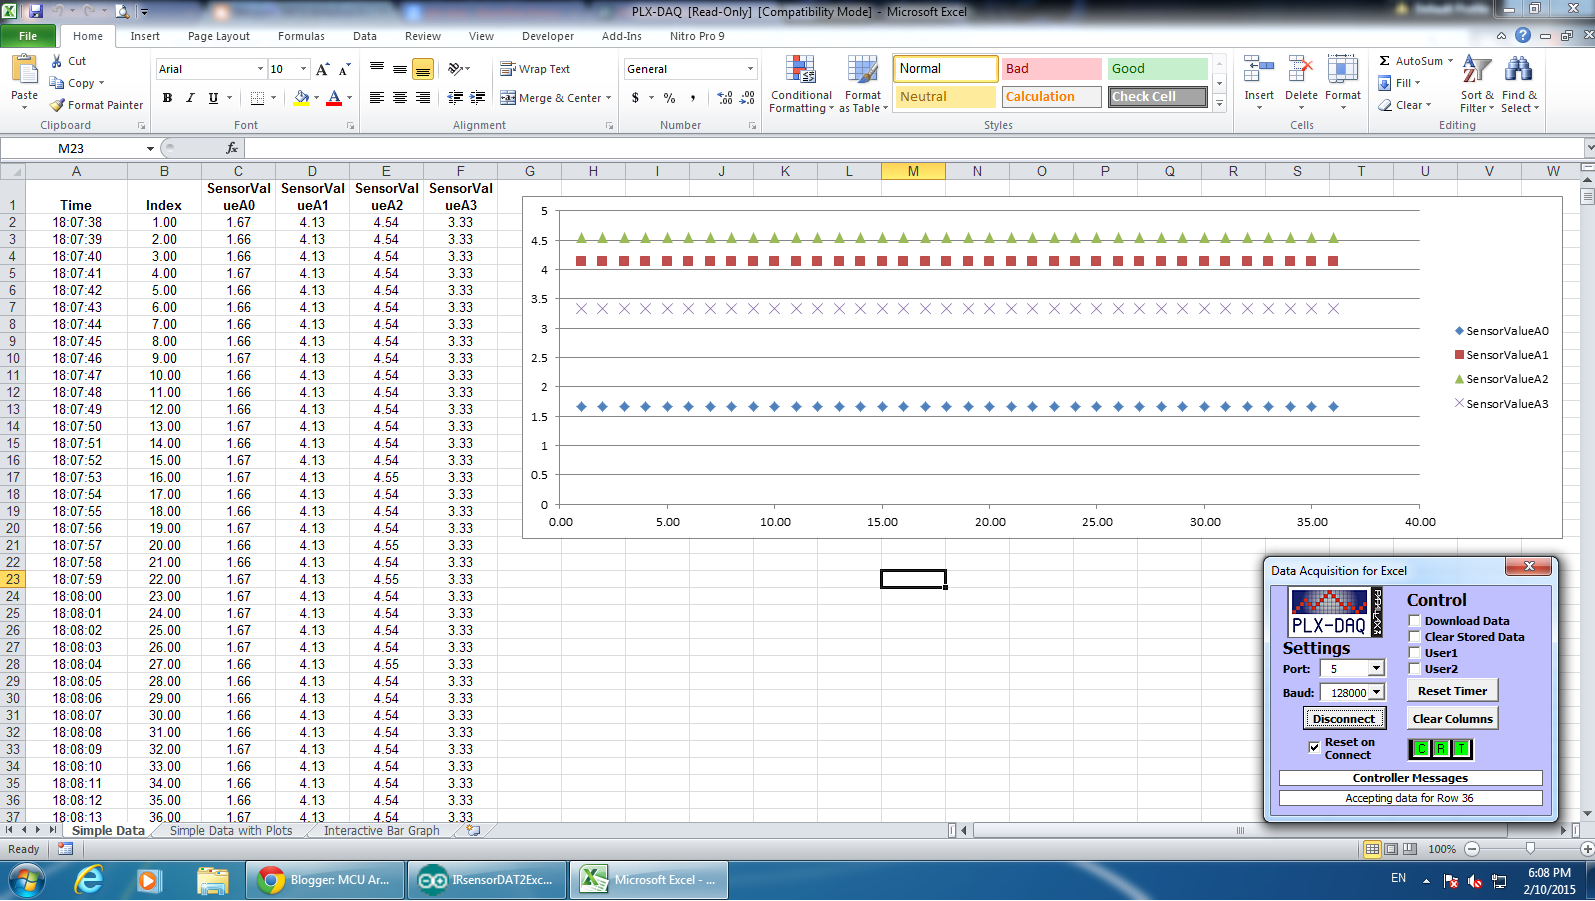 How to send data from Arduino to MS Excel (PLX-DAQ) - elec108